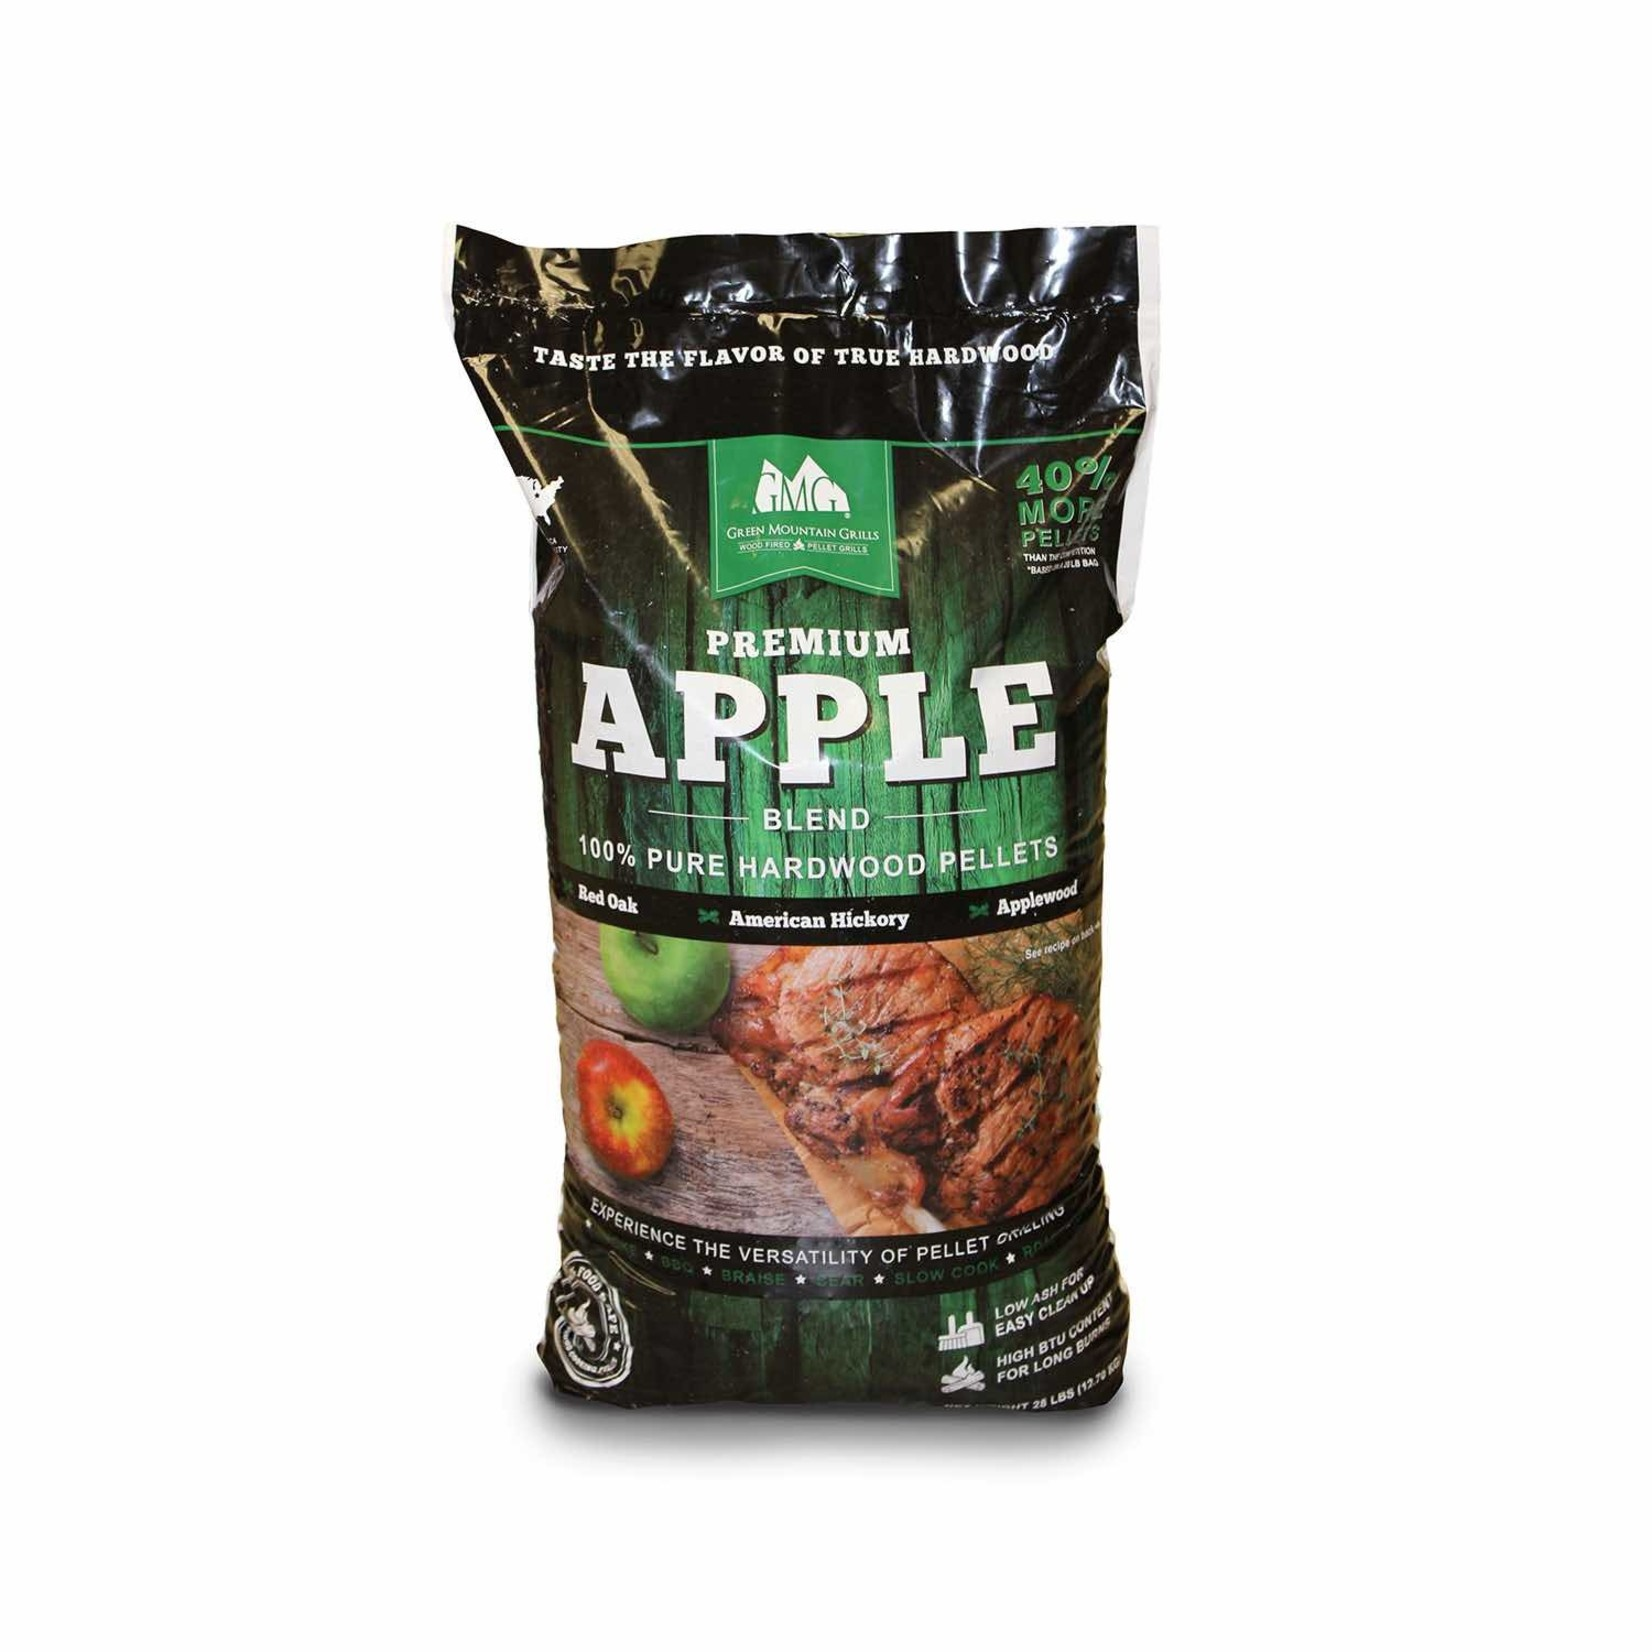 Green Mountain Grill GMG Barbecue Pellets Apple Blend 12.7 kg